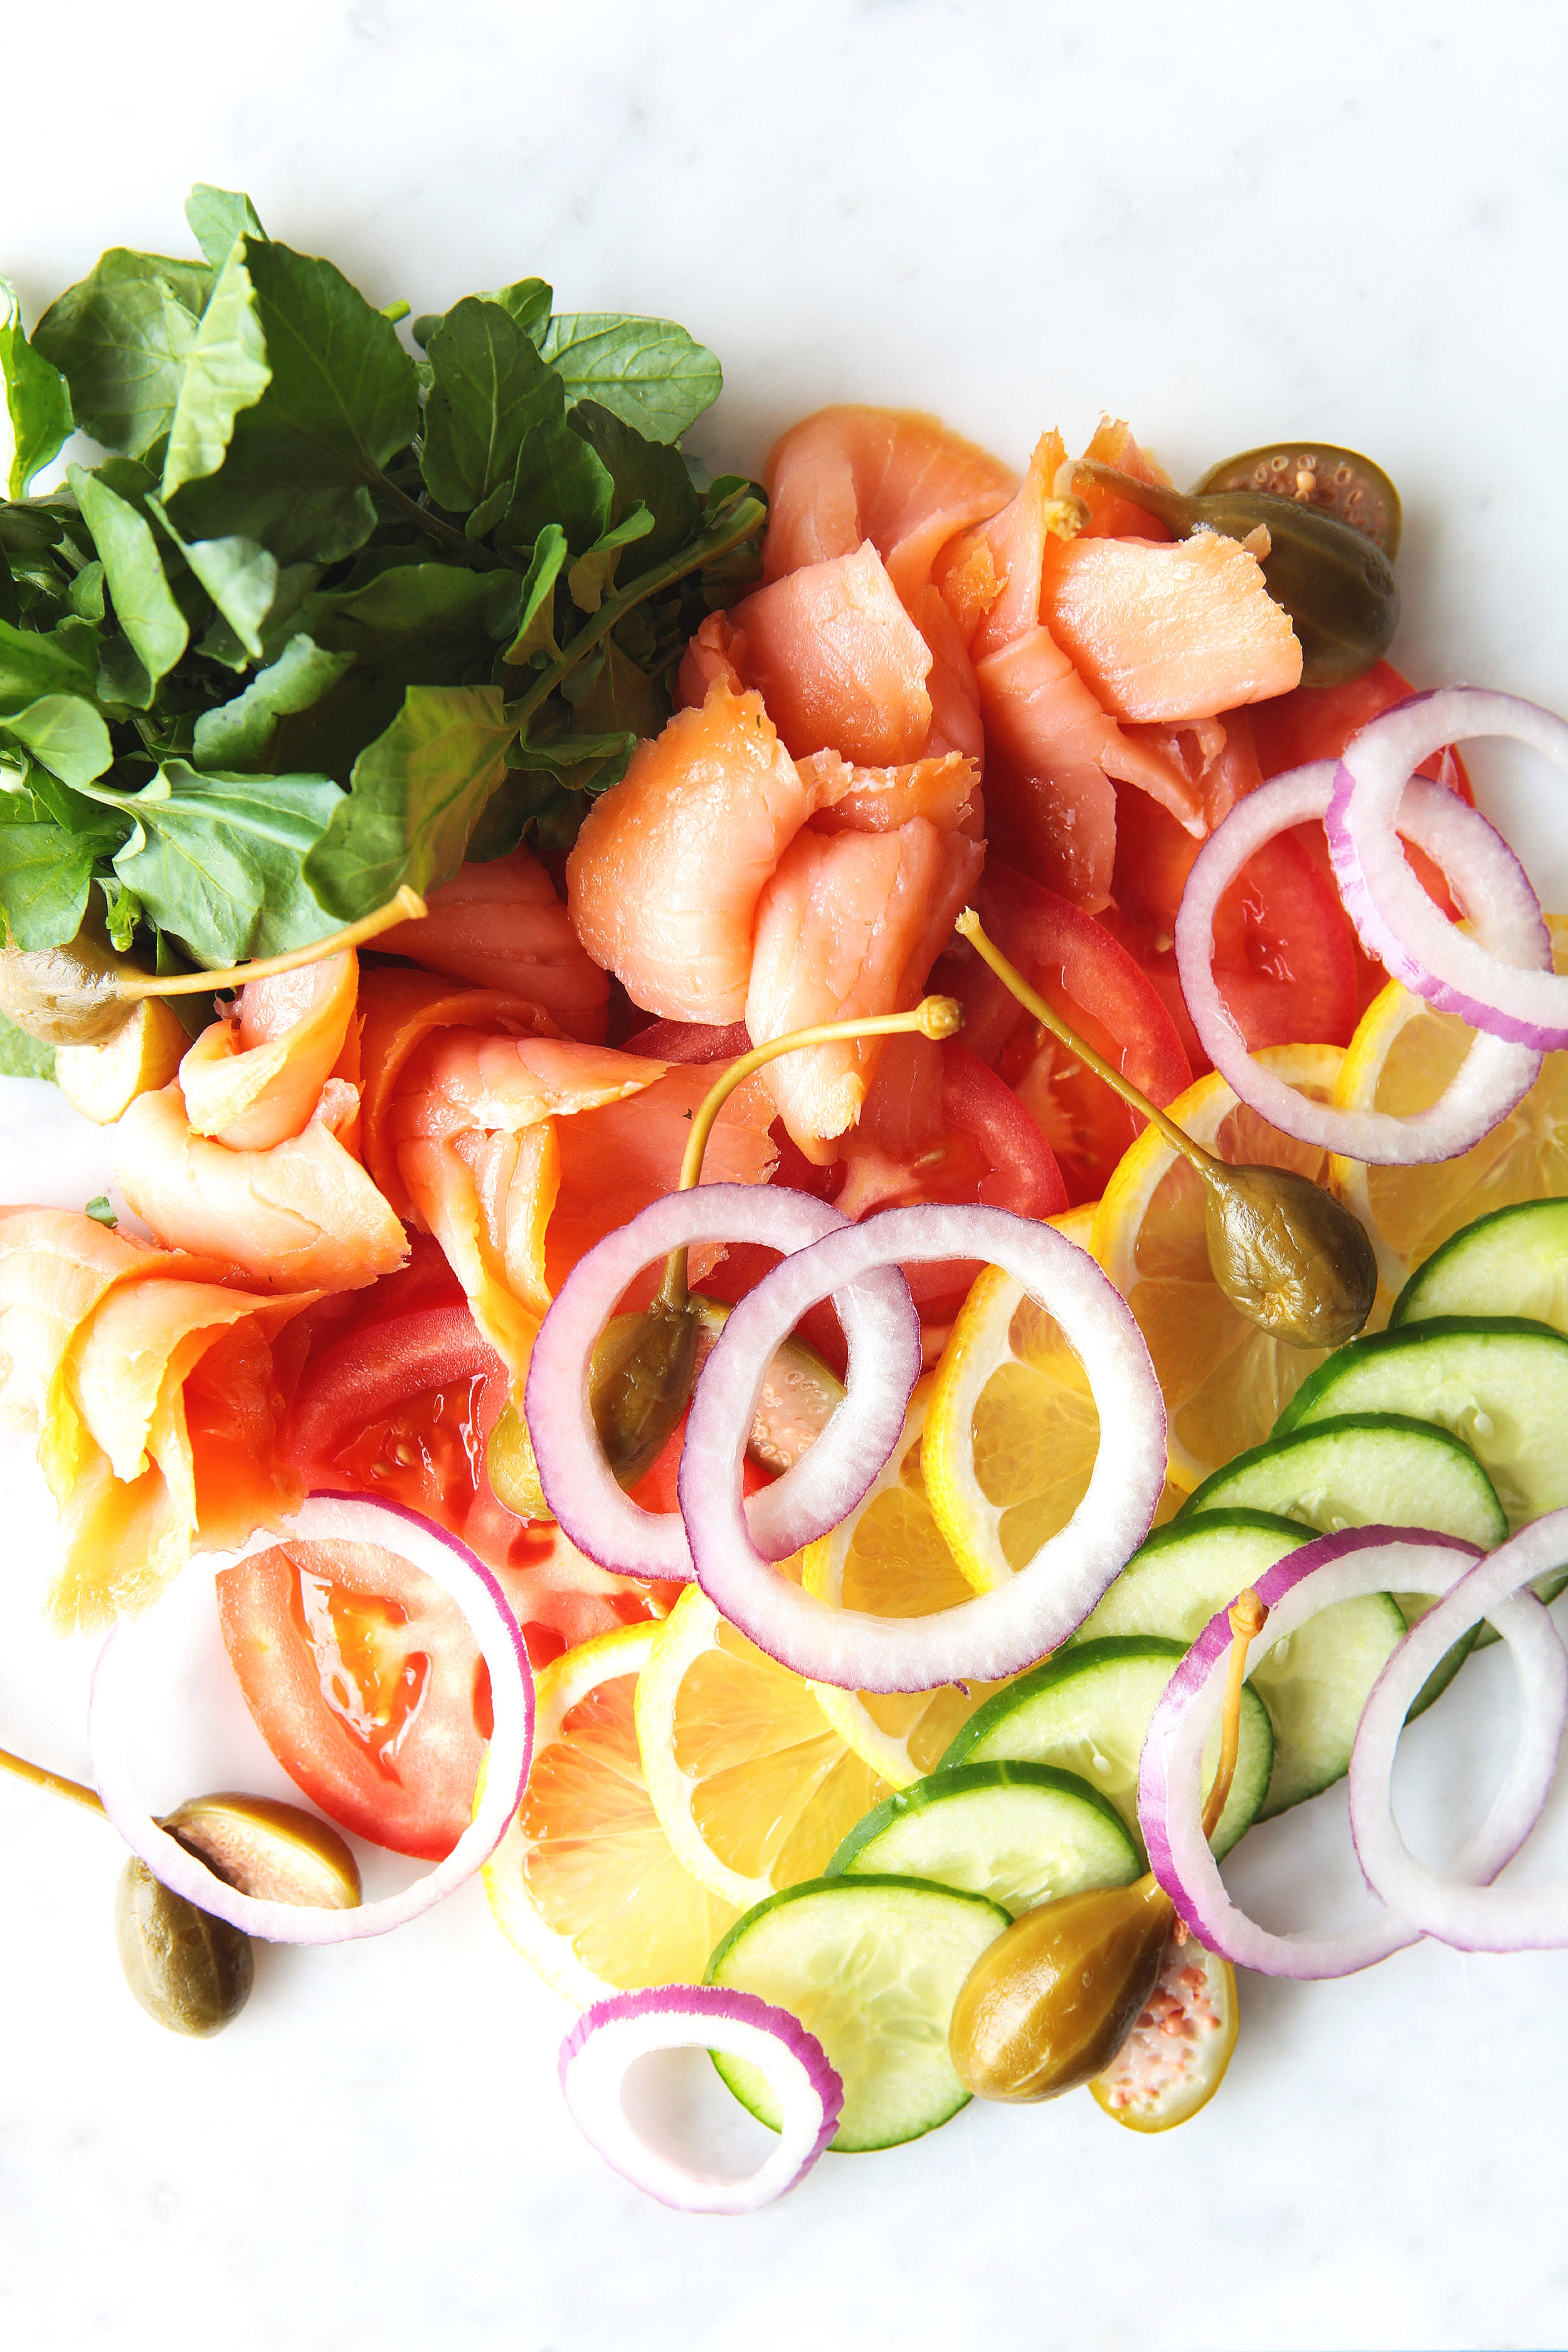 Smoked and cured lox with sliced tomato, cucumber, red onions and capers